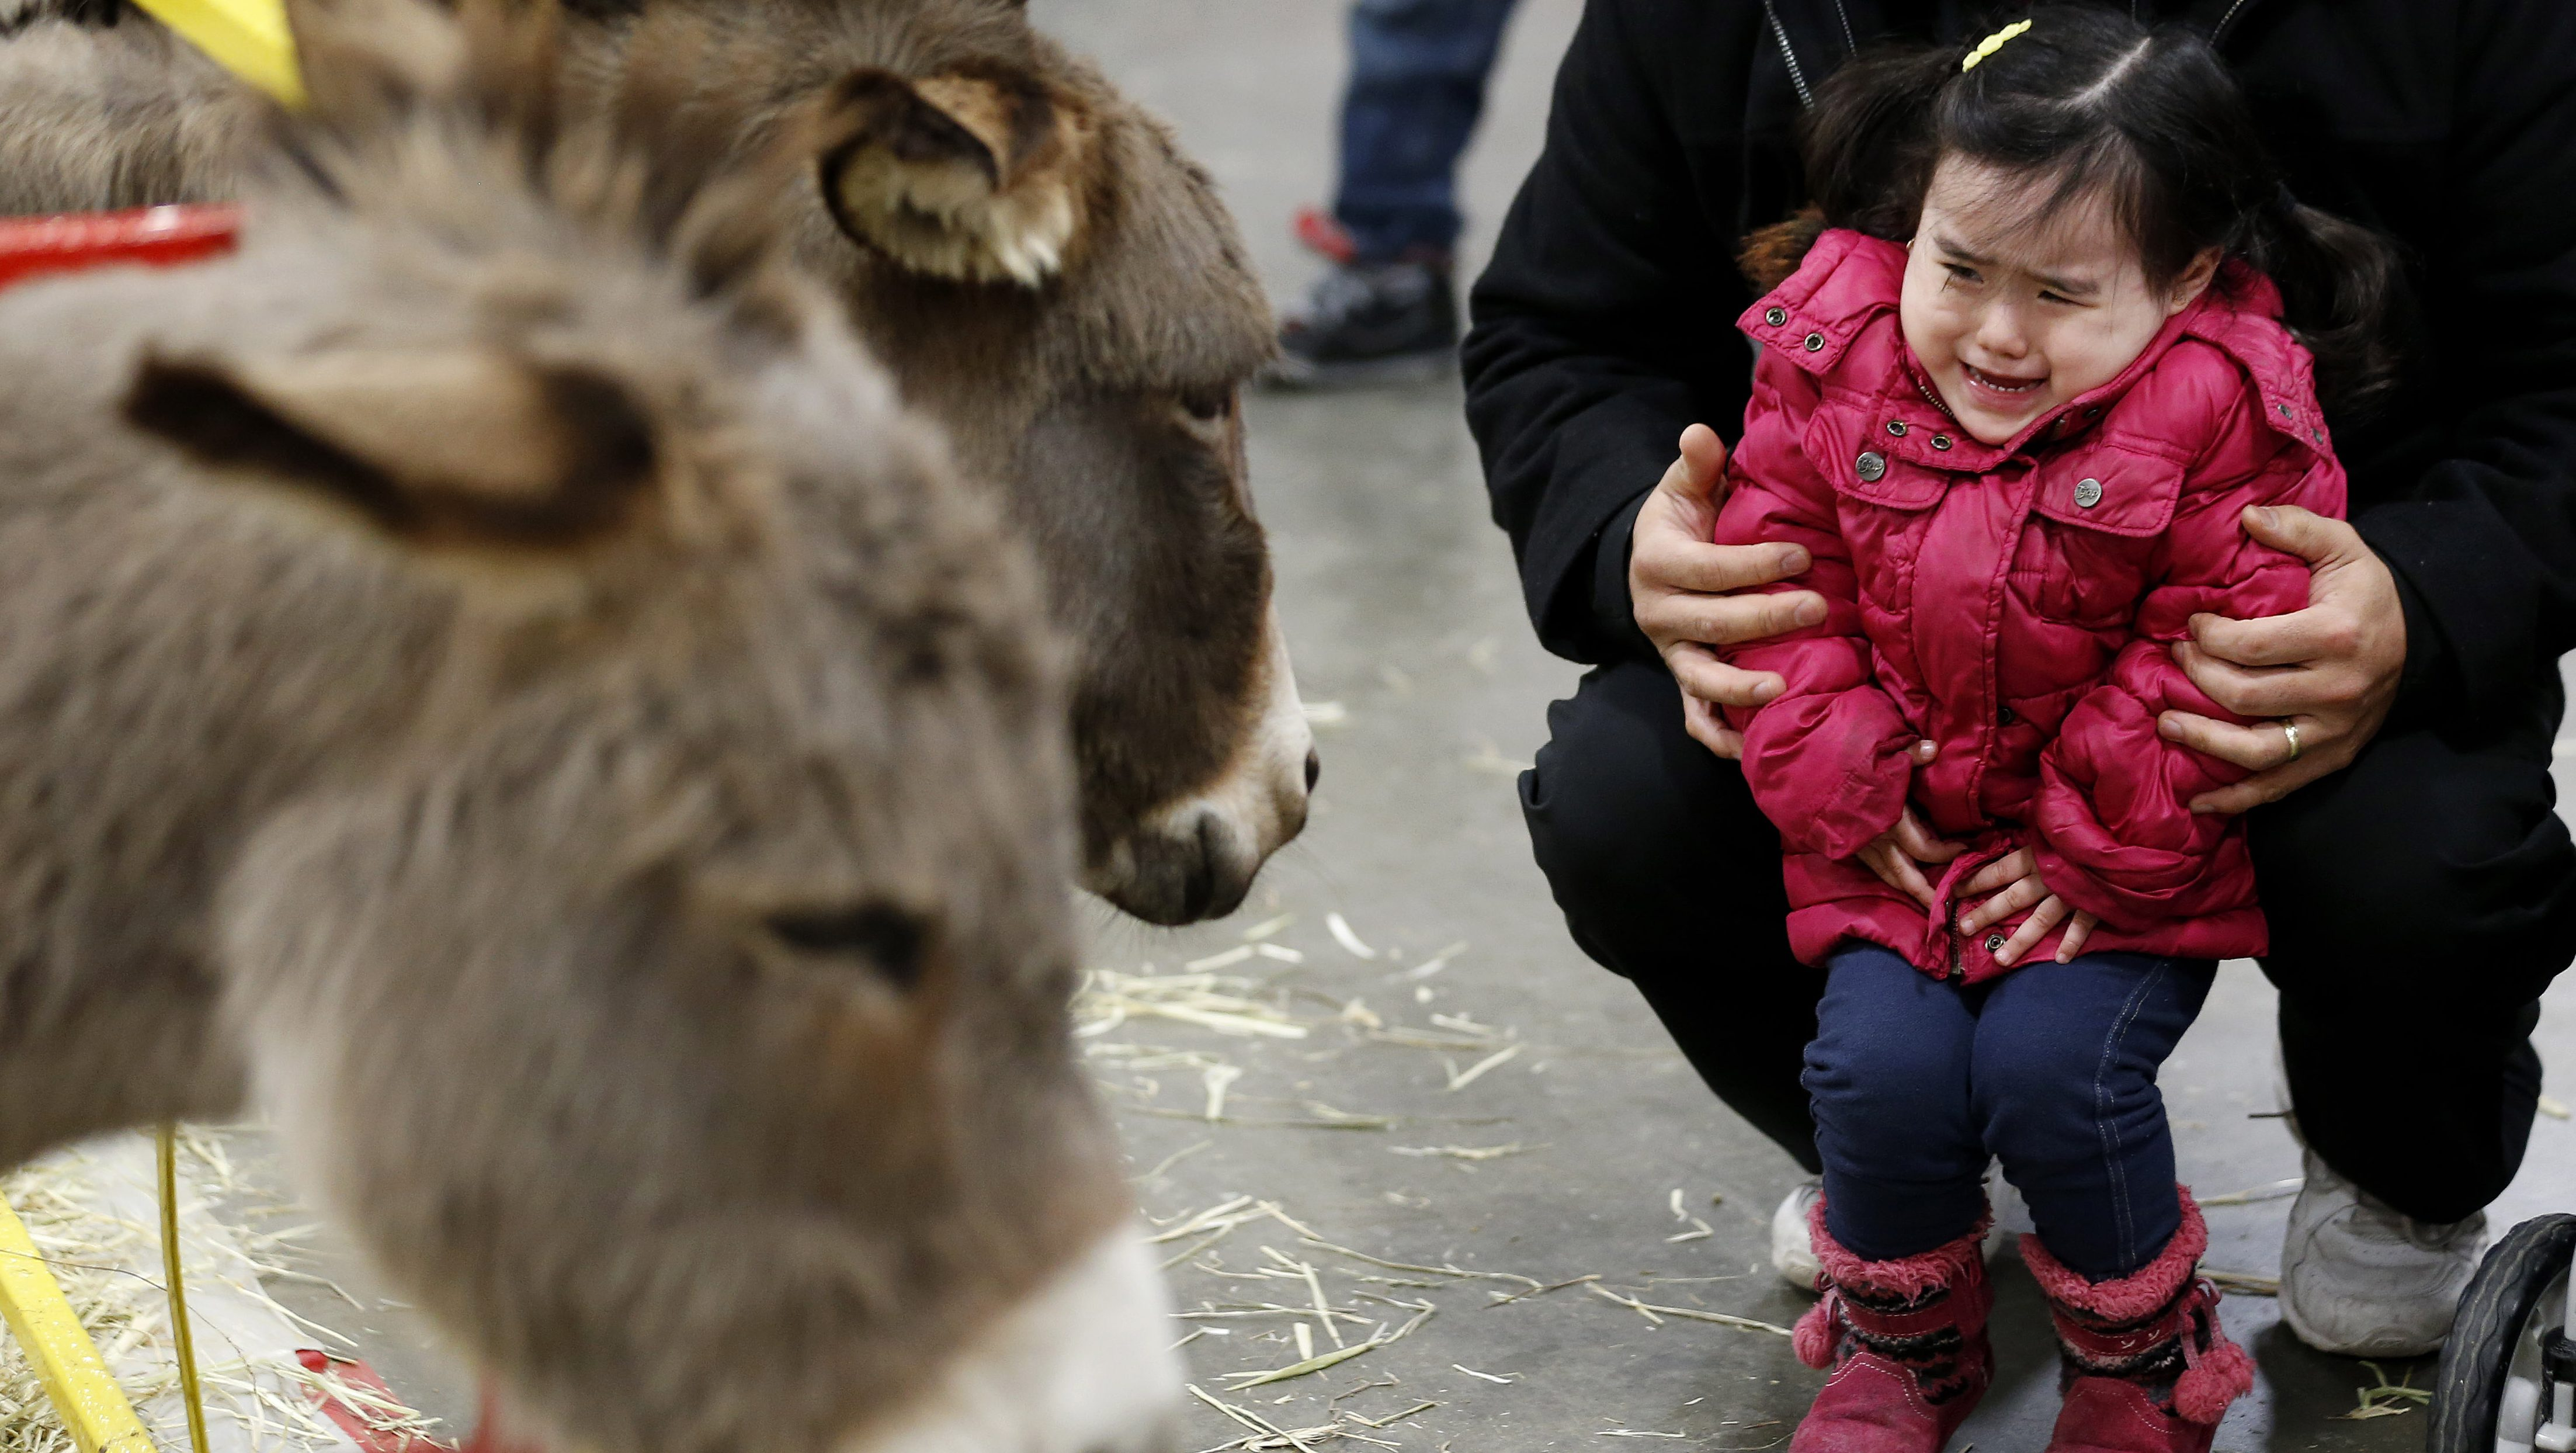 Joy Leroux, 2, is held by her father, Christian Leroux, while reacting to donkeys approaching her at the Kids Fun Fair & Traveling Zoo at the Meadowlands Exposition Center, Monday, Jan. 21, 2013, in Secaucus, N.J. The traveling zoo, which features carnival rides and petting zoo, closes out its weekend in New Jersey and will continue on to Syracuse, N.Y., next weekend. (AP Photo/Julio Cortez)